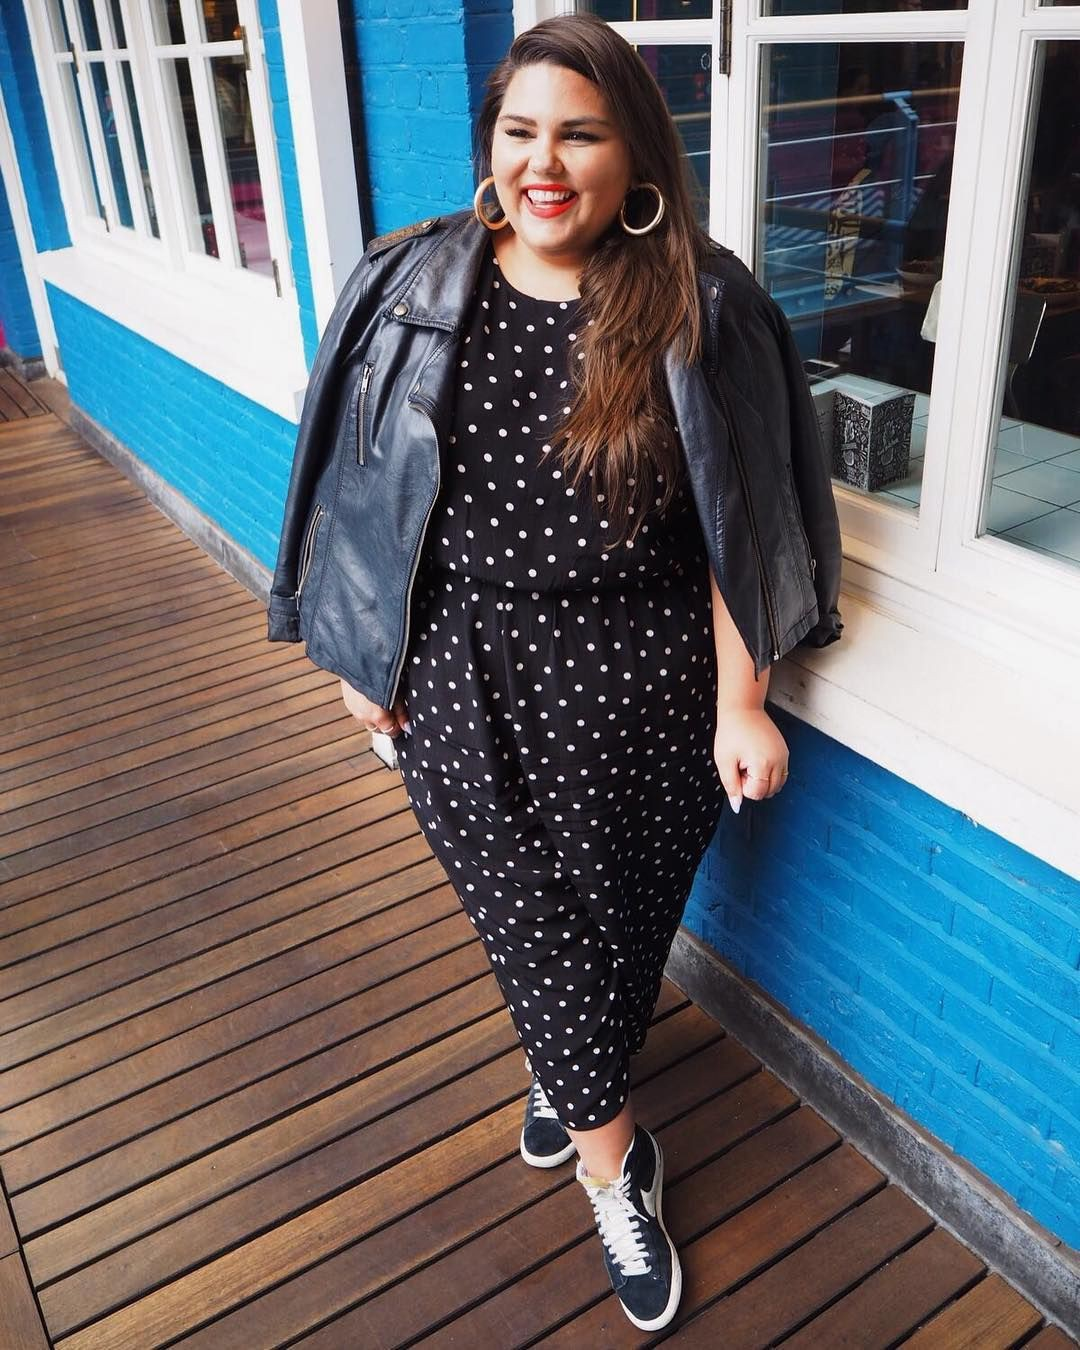 Black and white outfit ideas with leather jacket, polka dot, jacket